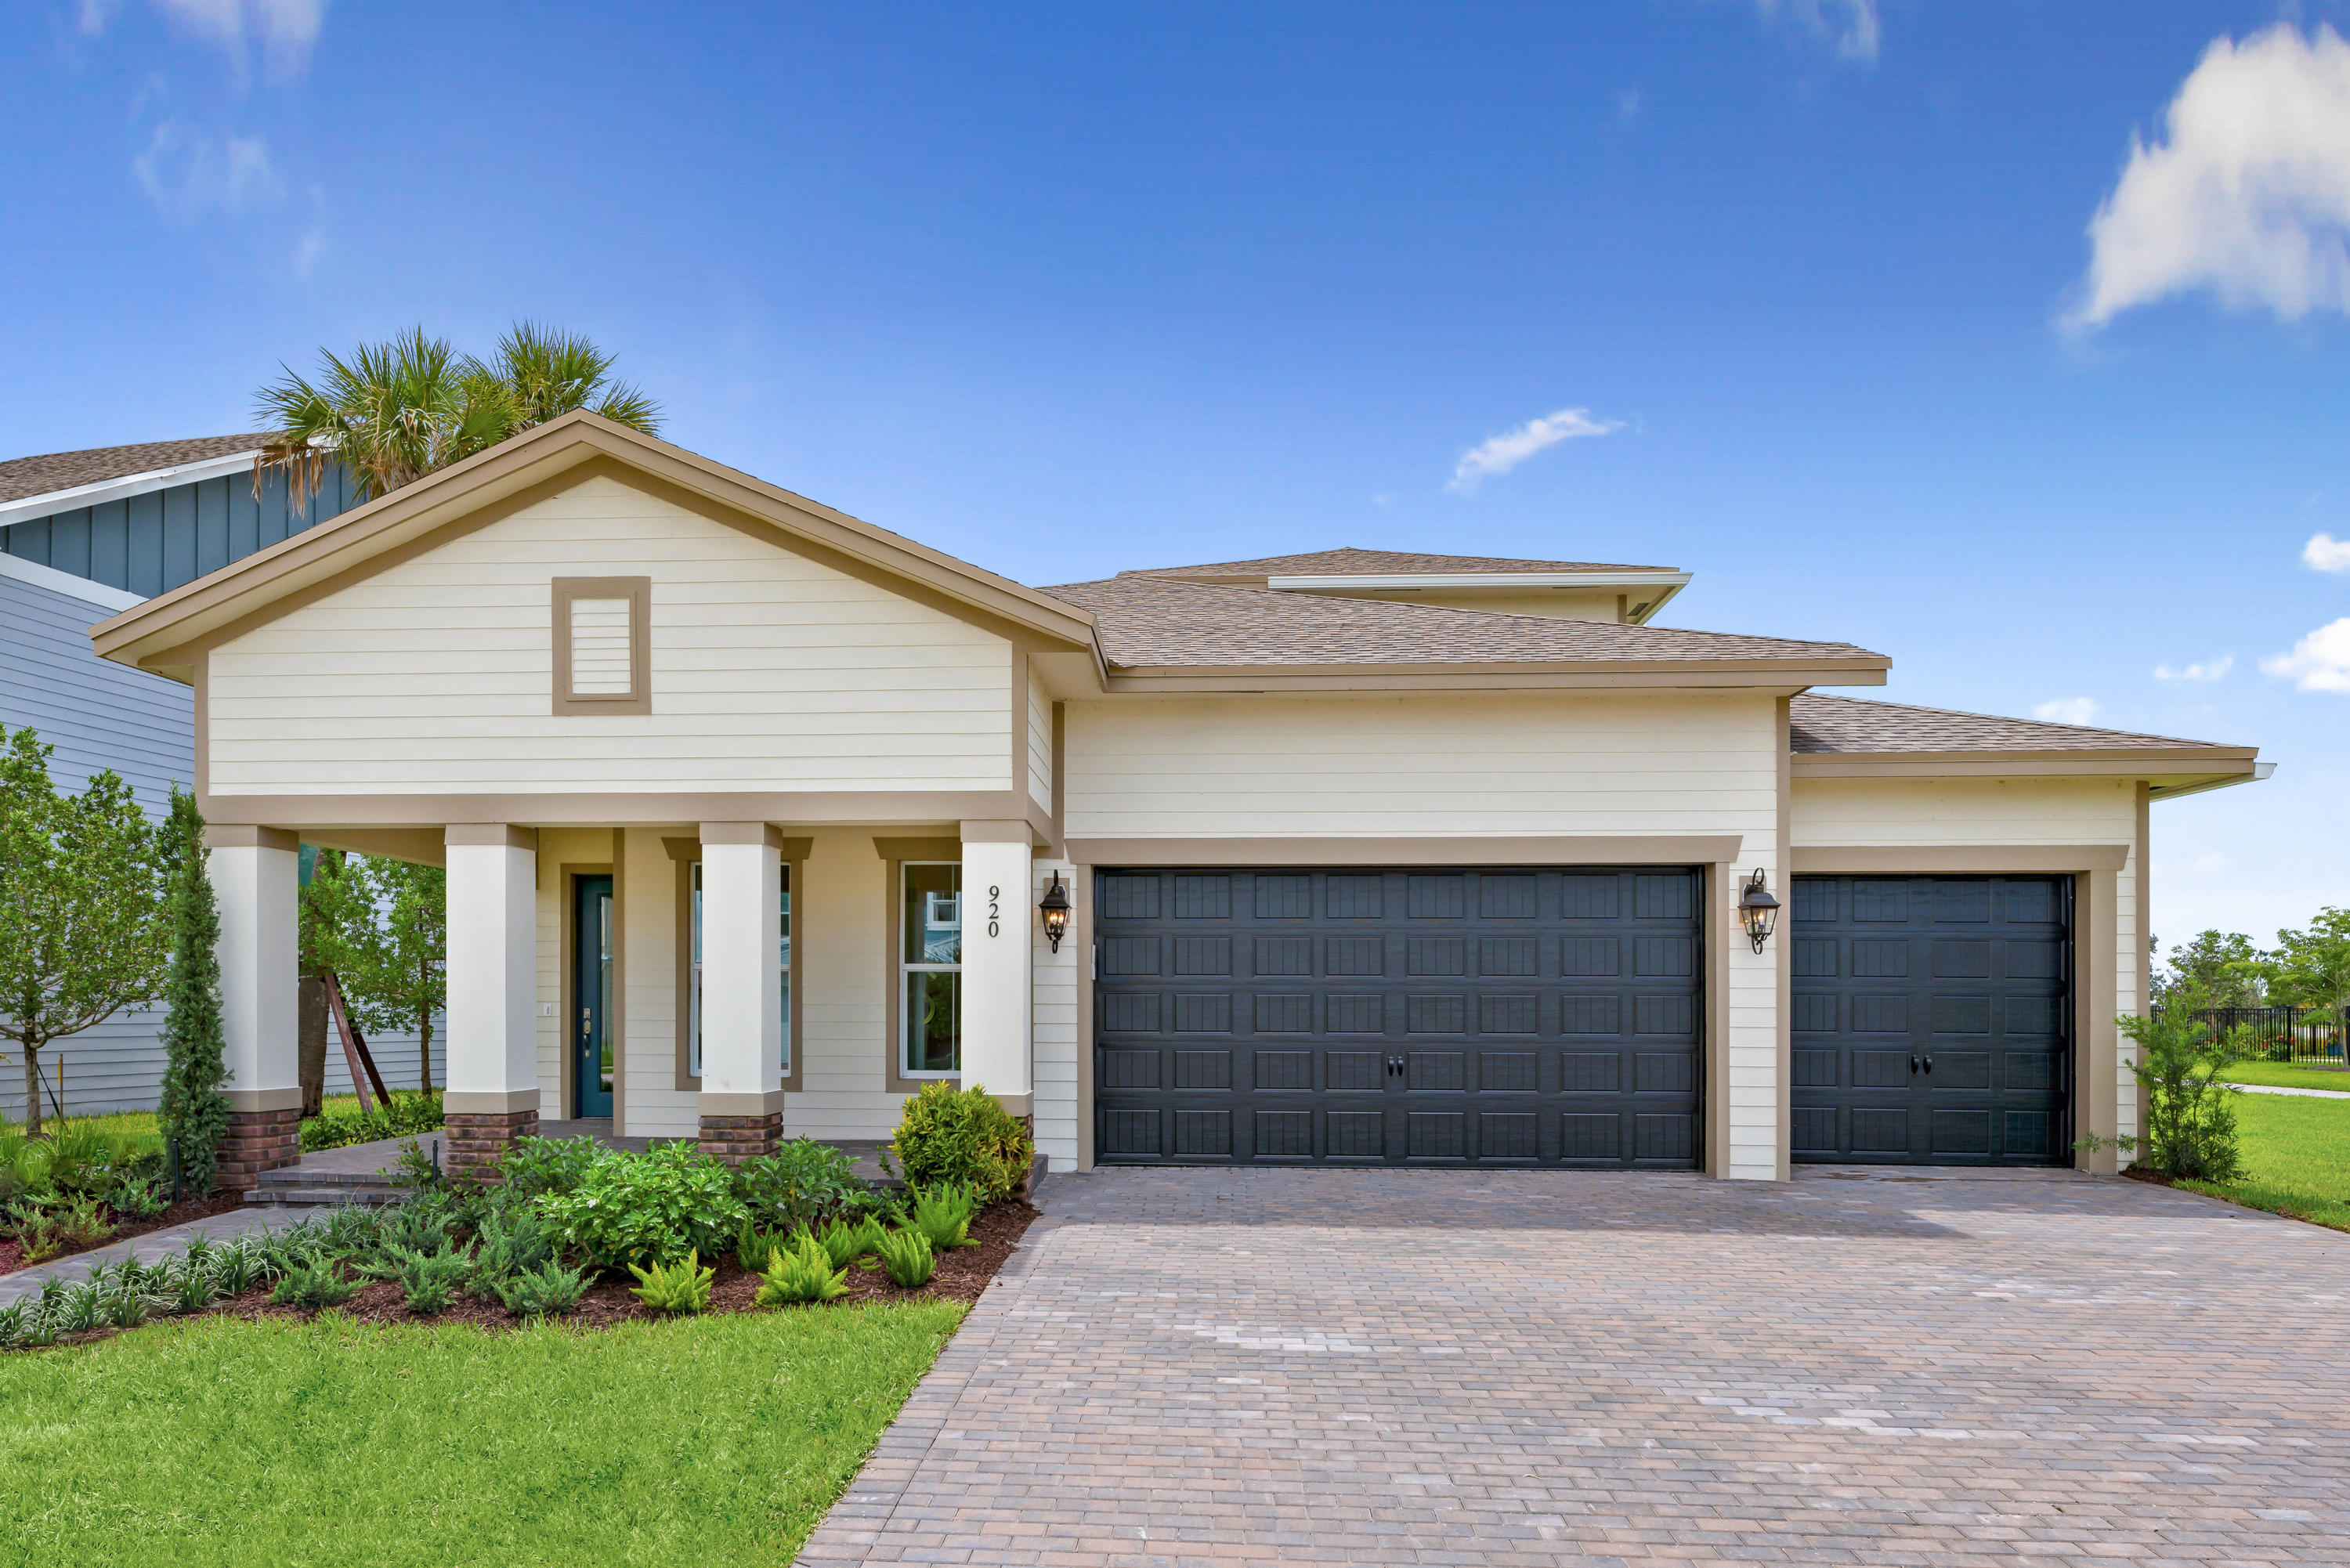 Photo of 869 Honey Oak Court, Loxahatchee, FL 33470